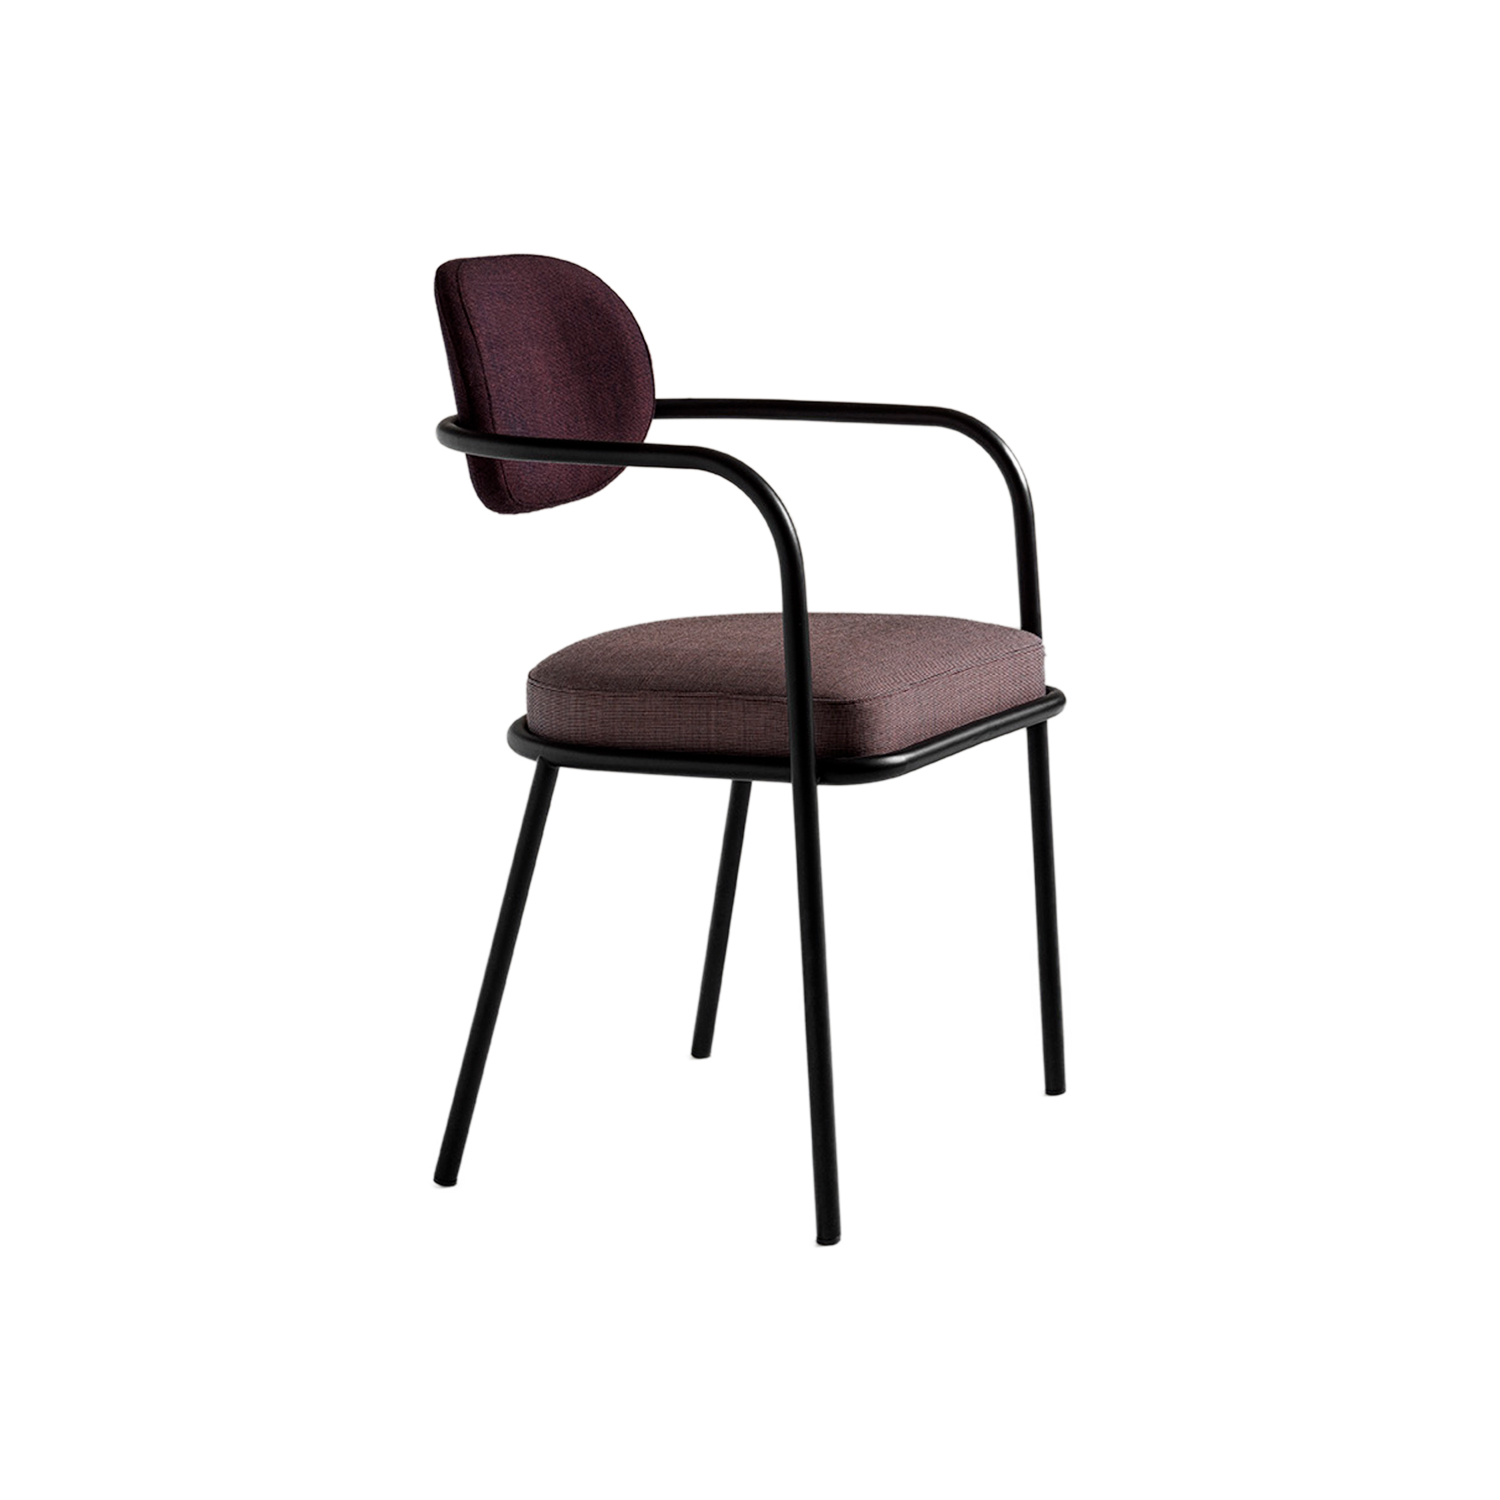 Ula Armchair - Distinguished by its curved tubular frame and fabric upholstery, Ula stands out for its slim, rounded body which alternates with the welcoming shapes of the padded seat and backrest. Ula is a chair with light volumes and precise shapes. The seat armrest bends down towards the floor, to such an extent that it becomes its front leg, giving the chair itself a truly light-weight appearance, making it look almost suspended. Ula Chair is made of a tubular steel frame. Seat and back are in polyurethane foam and polyester fiber lining. Cover in mono or two coloured fabric. A range of materials, colours and sizes are available in a number of combinations. Prices may vary. Please enquire for full details.  | Matter of Stuff